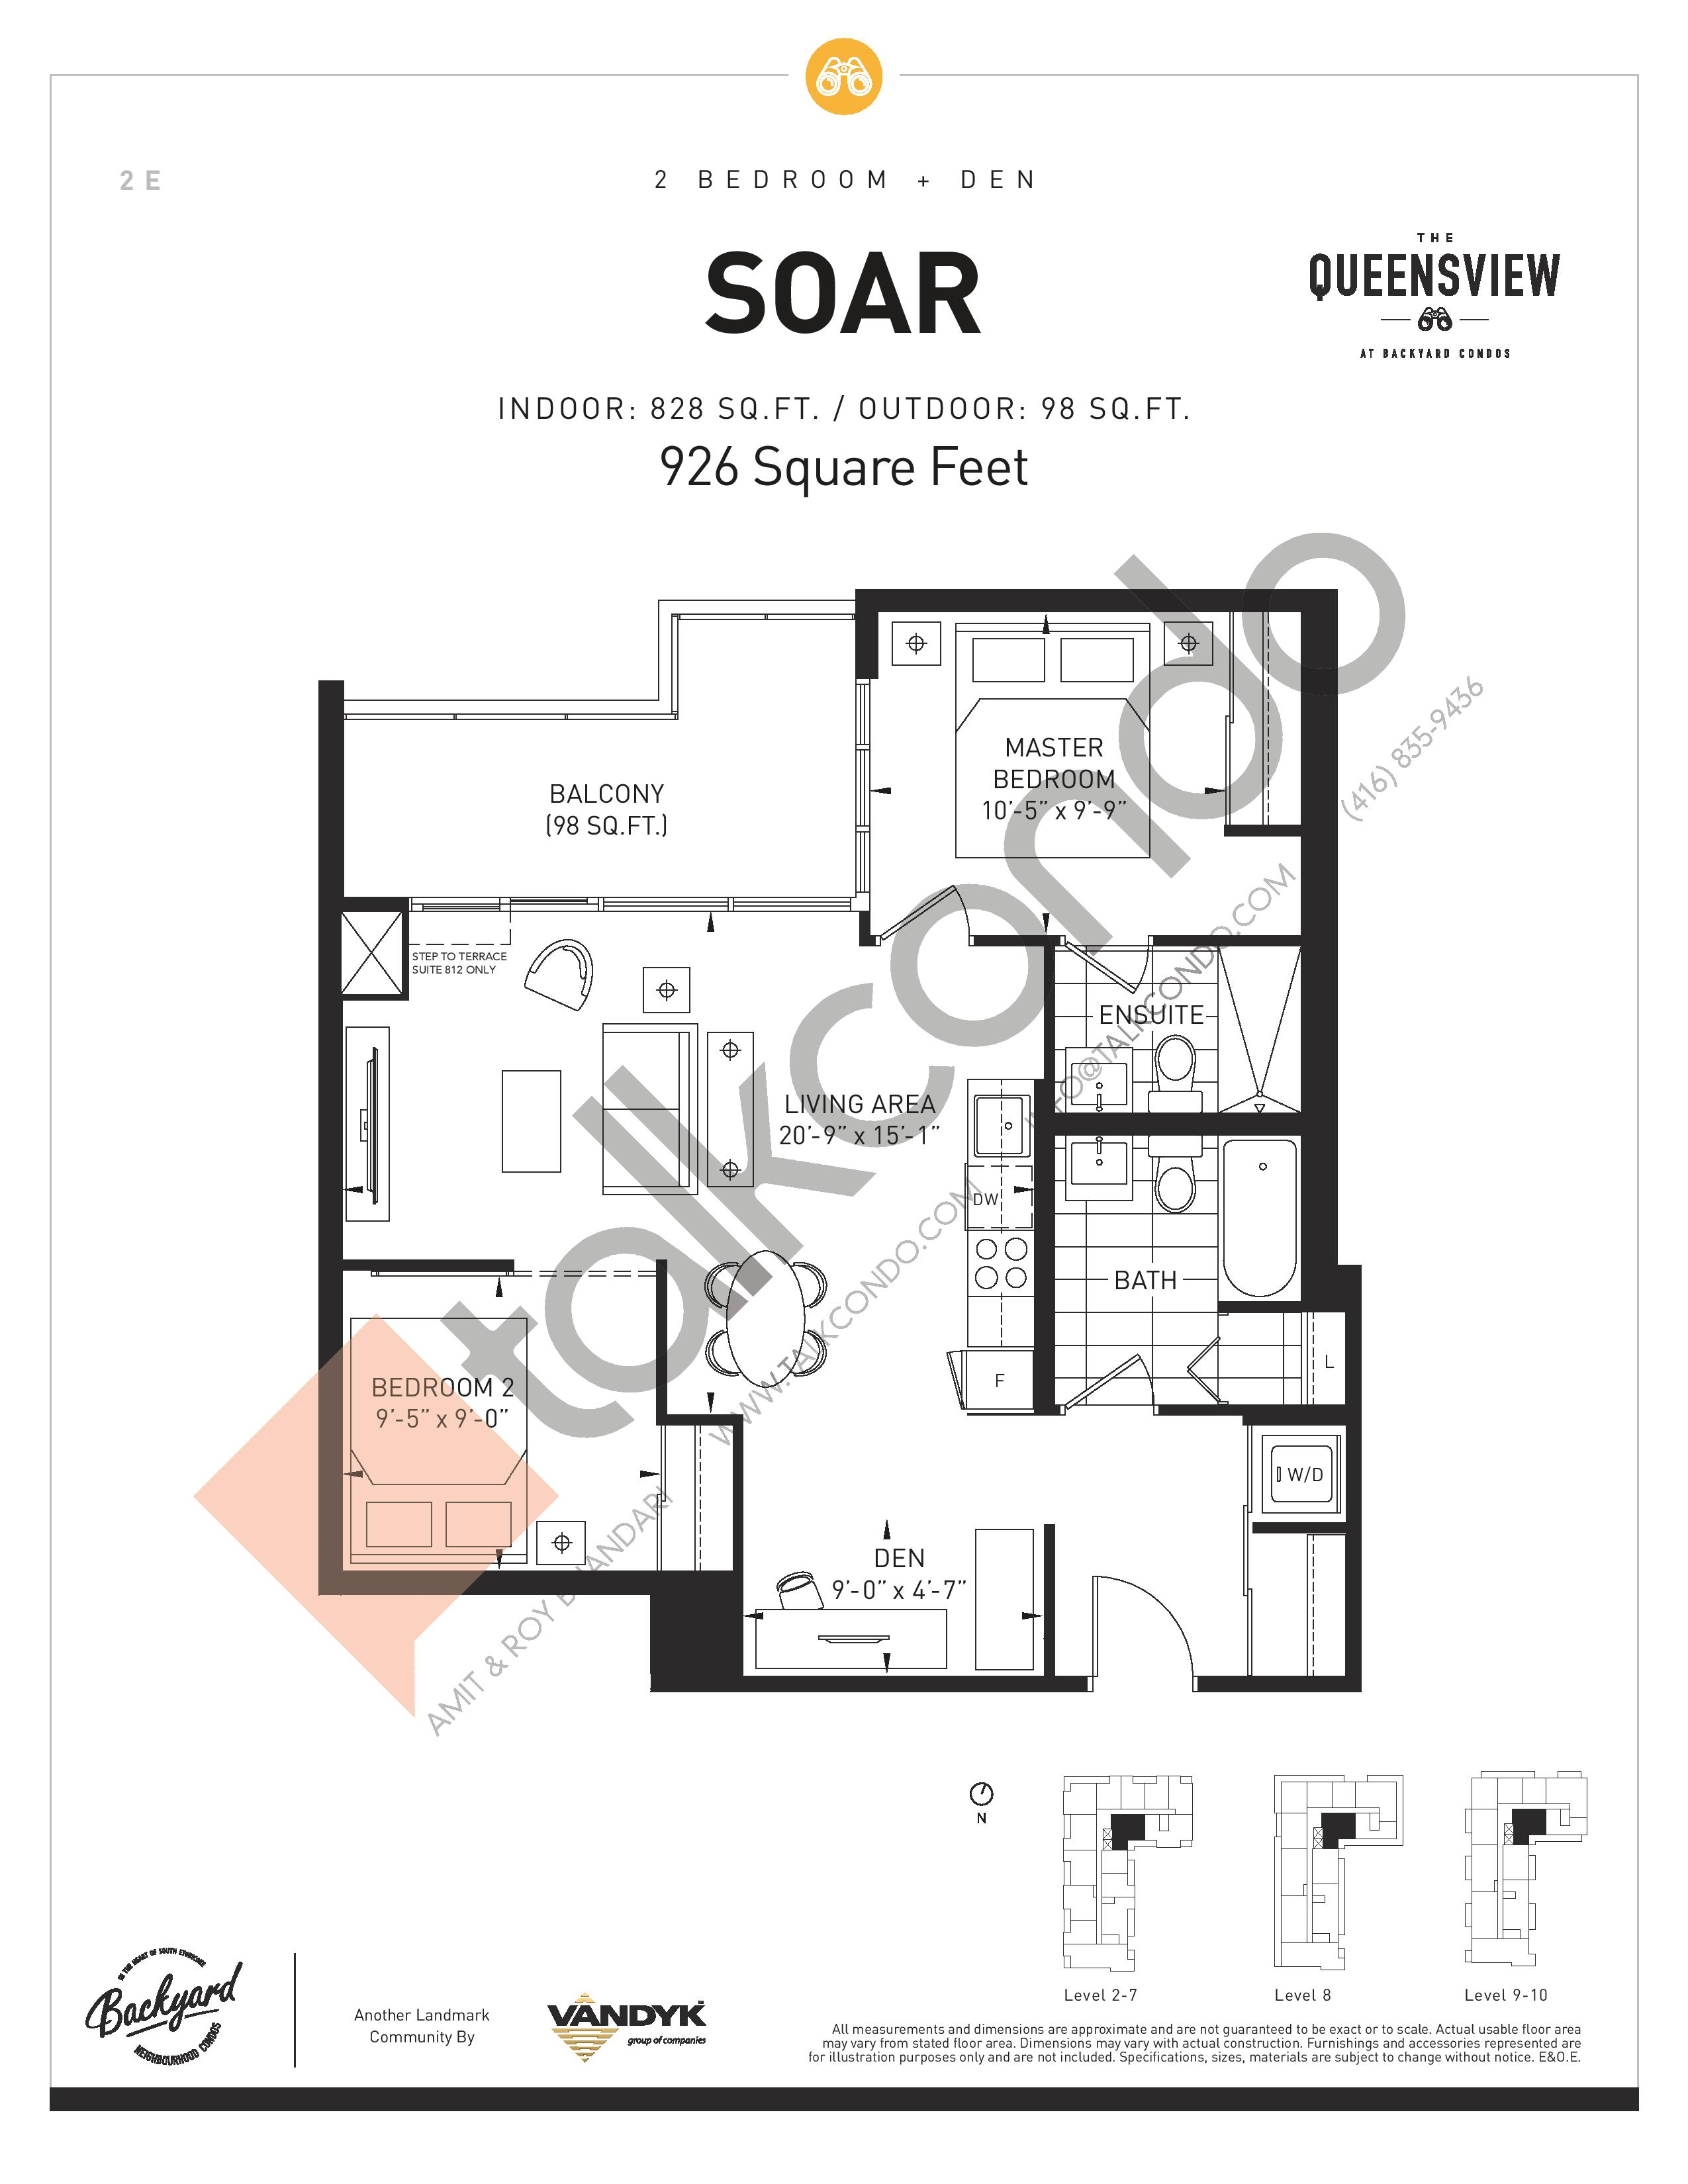 Soar Floor Plan at The Queensview at Backyard Condos - 828 sq.ft